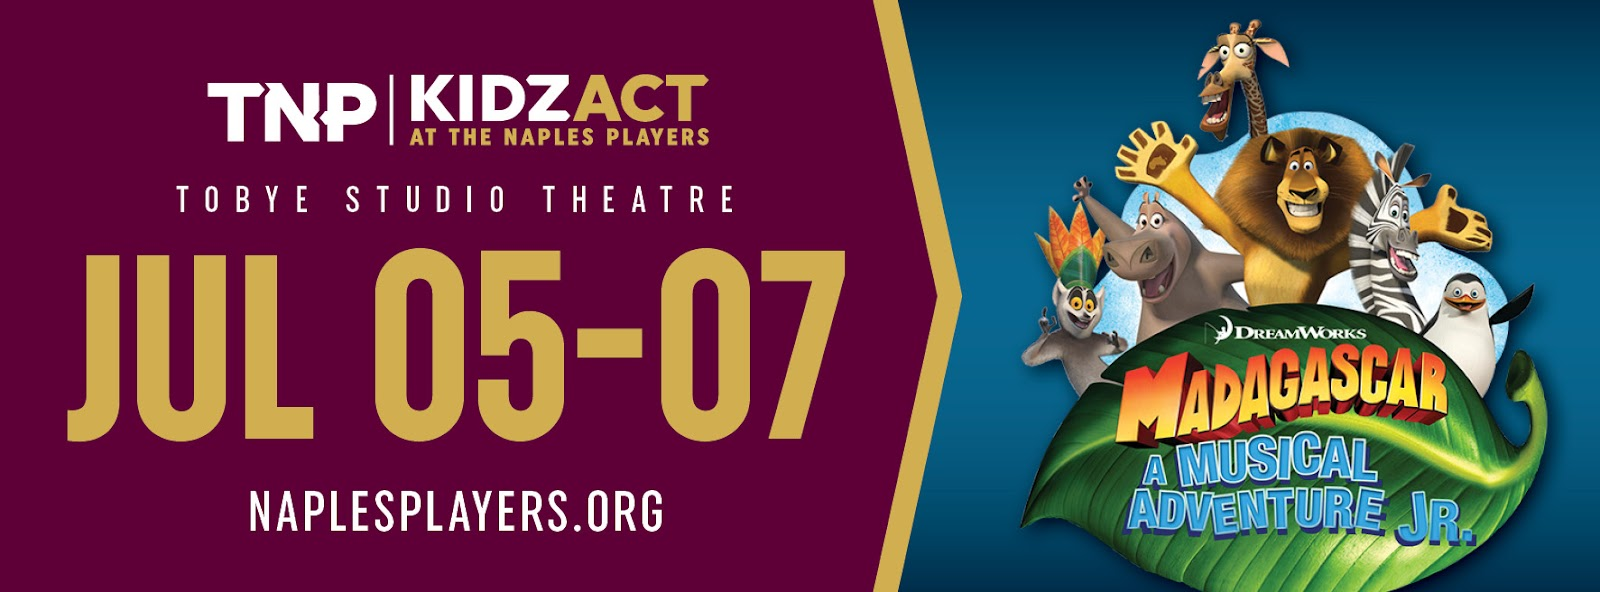 THE NAPLES PLAYERS KIDZACT PRESENTS MADAGASCAR A MUSICAL ADVENTURE JR. JULY 5 - 7, 2019